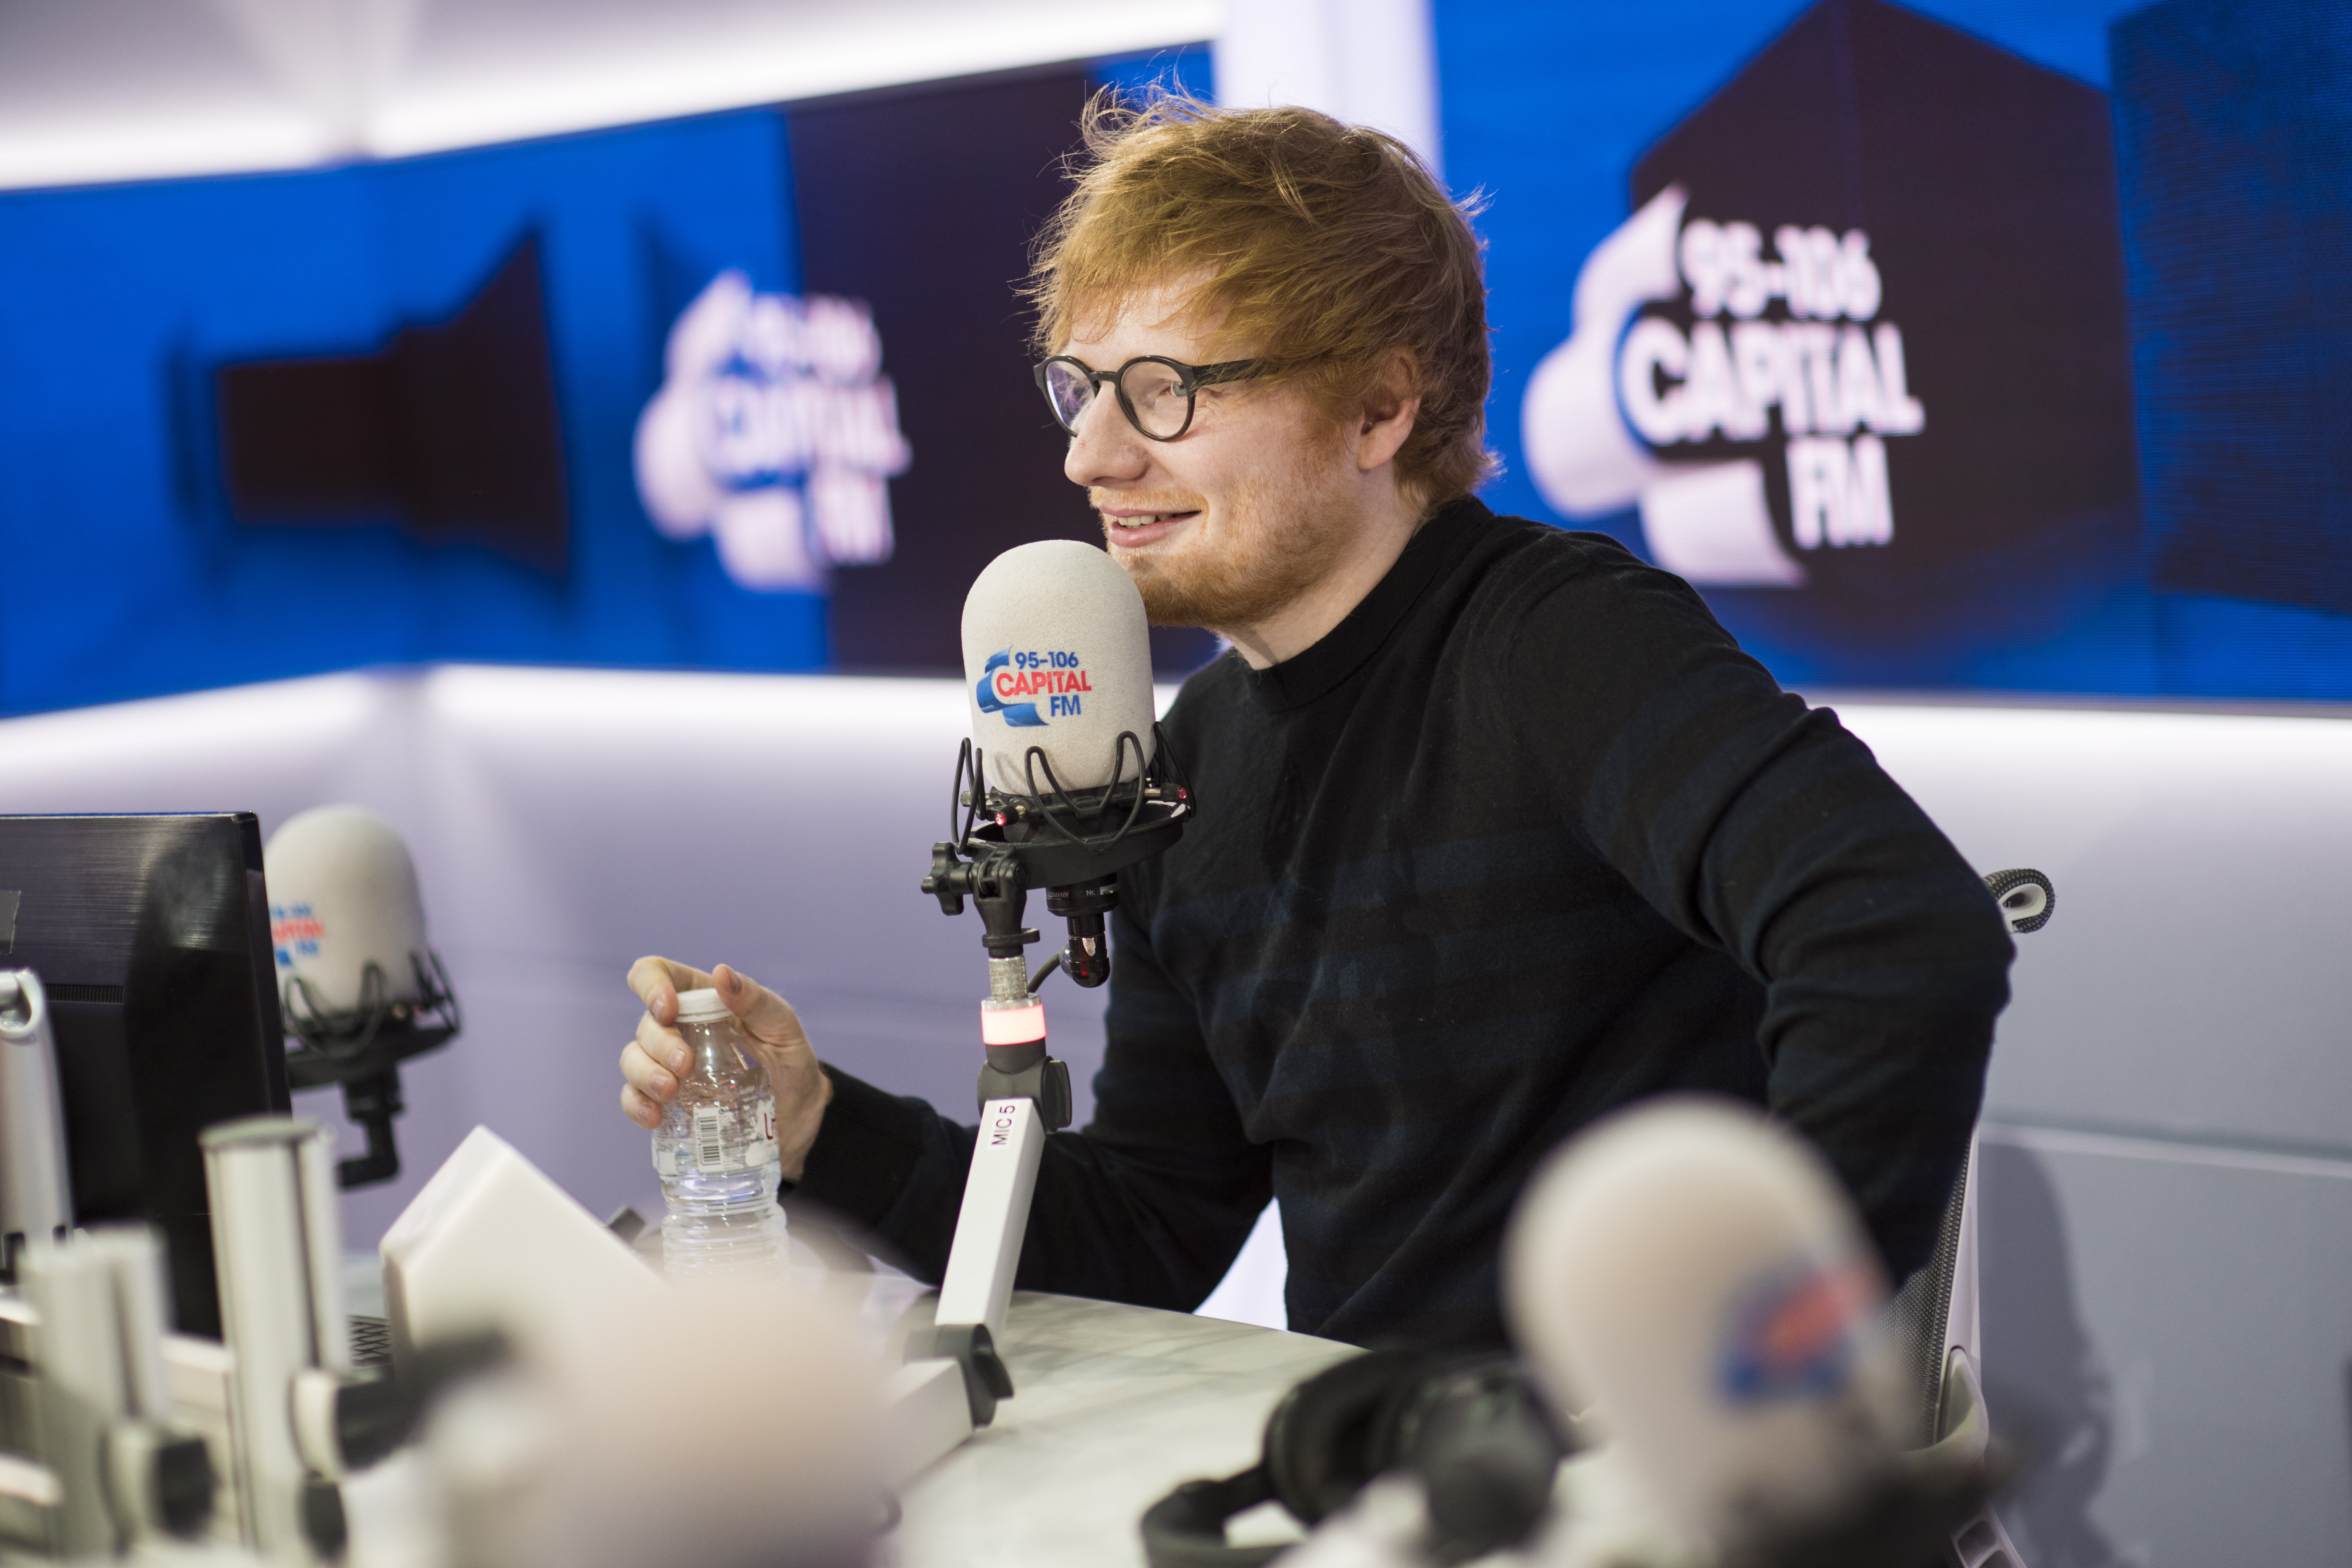 Ed Sheeran tattoos Roman Kemp live on air